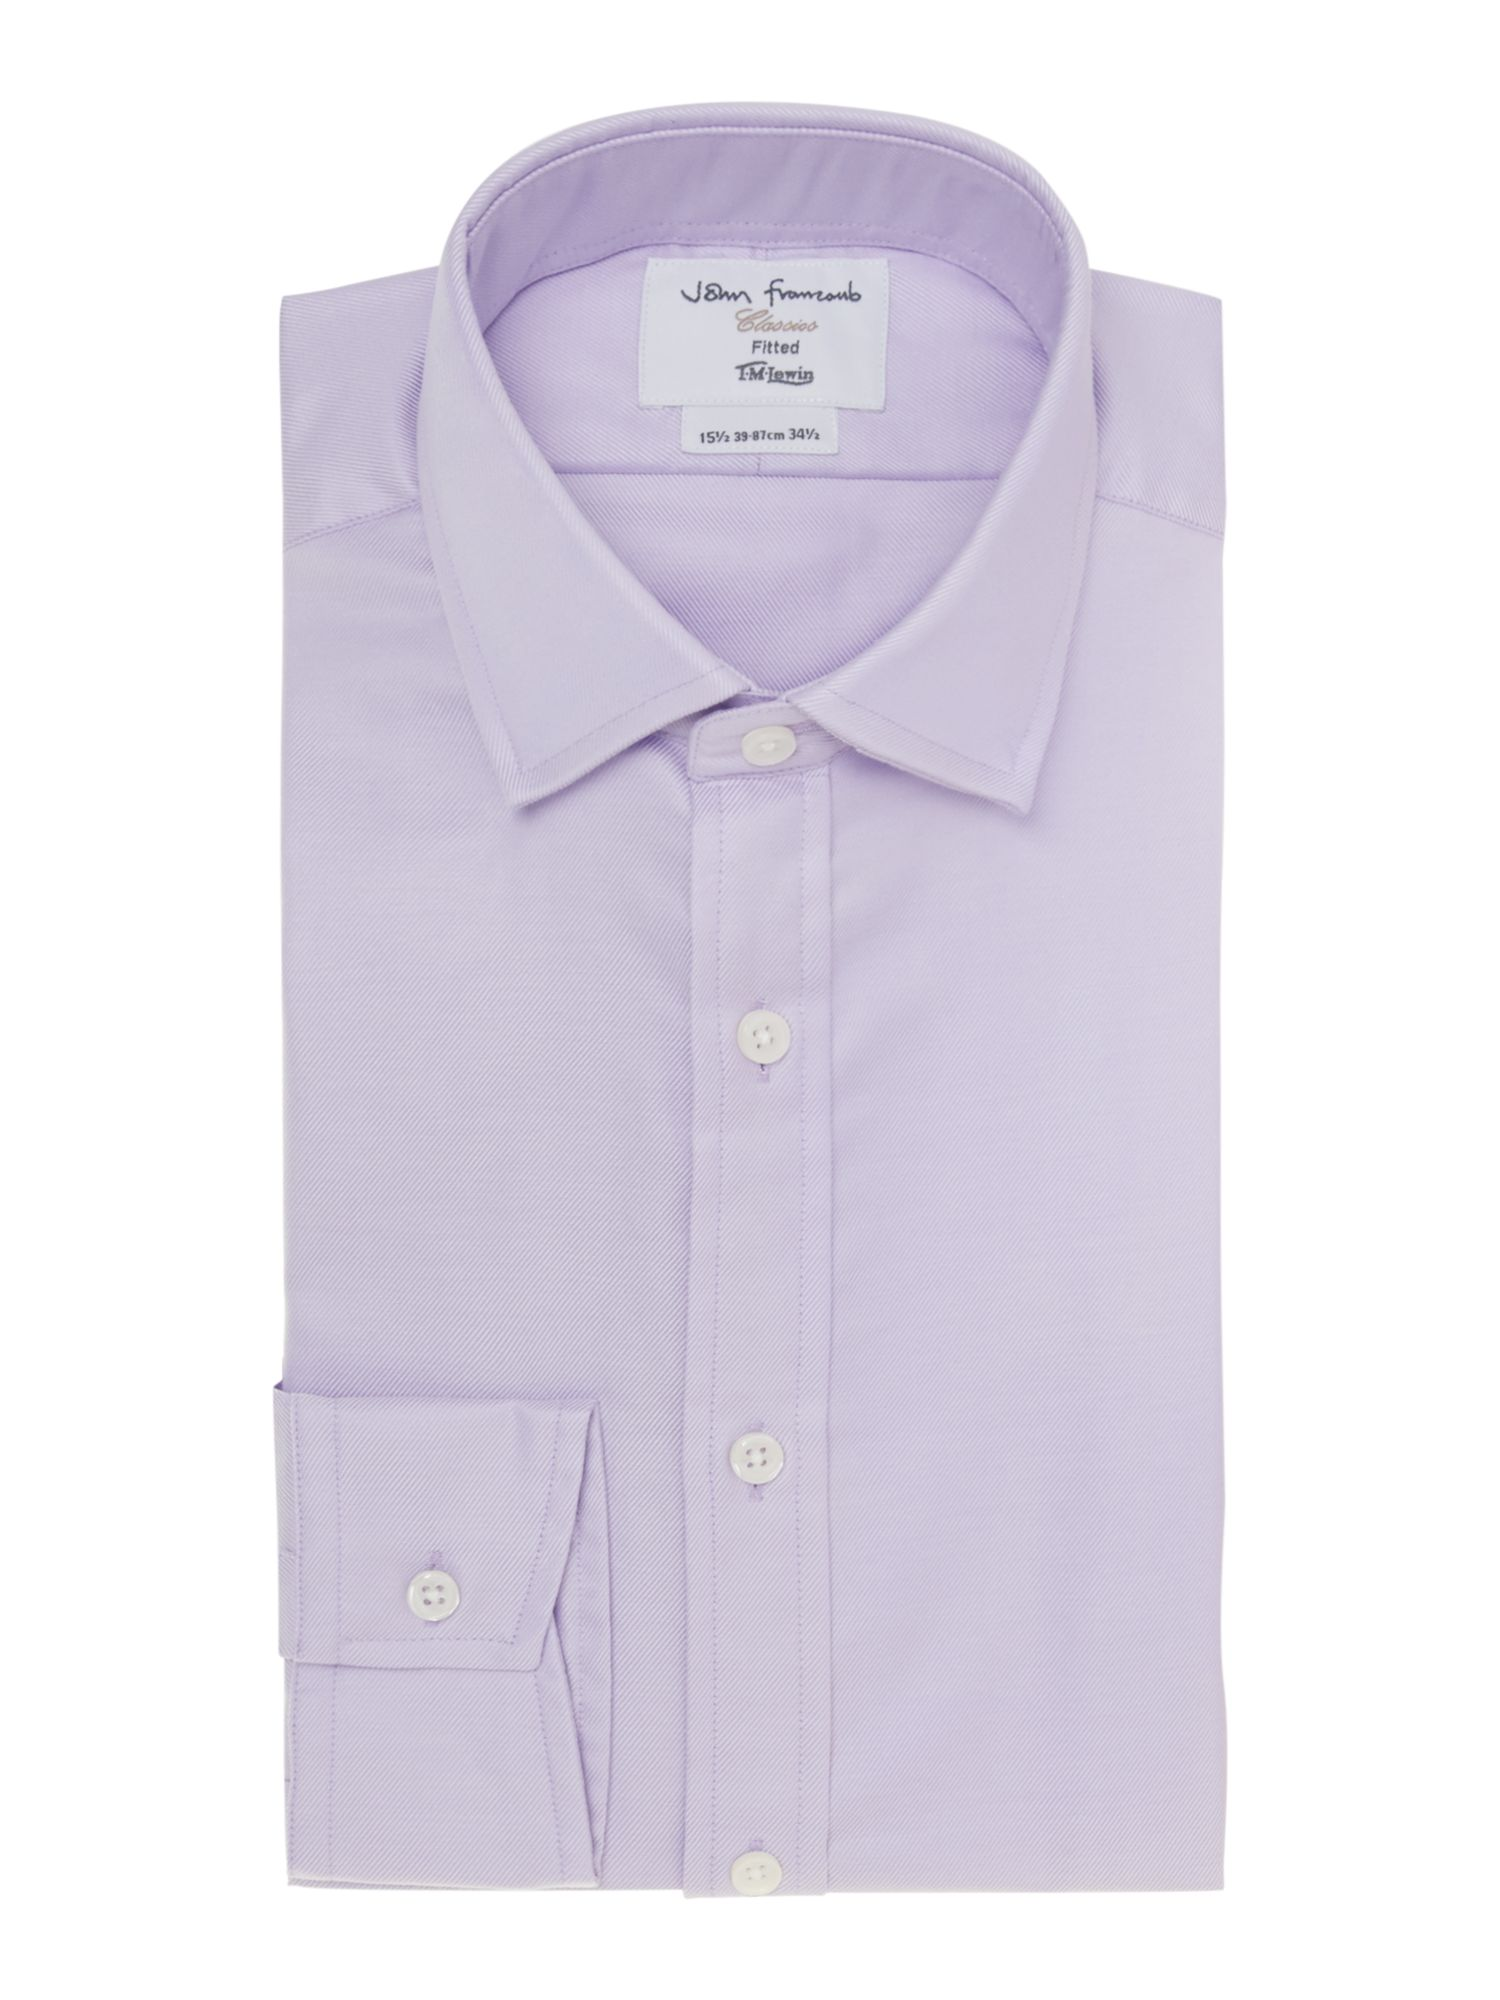 Mens TM Lewin Plain Fitted Long Sleeve Formal Shirt Lilac